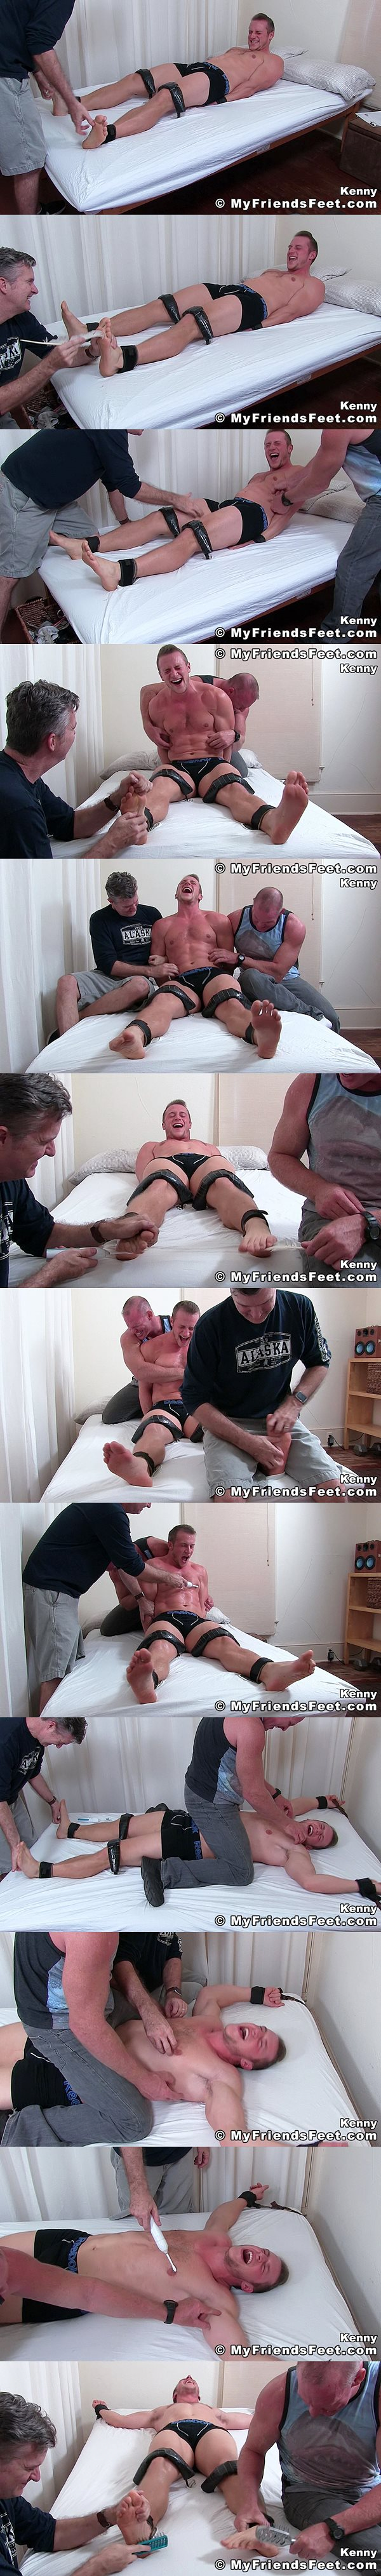 Hot athletic jock Kenny captured and tickled at Myfriendsfeet